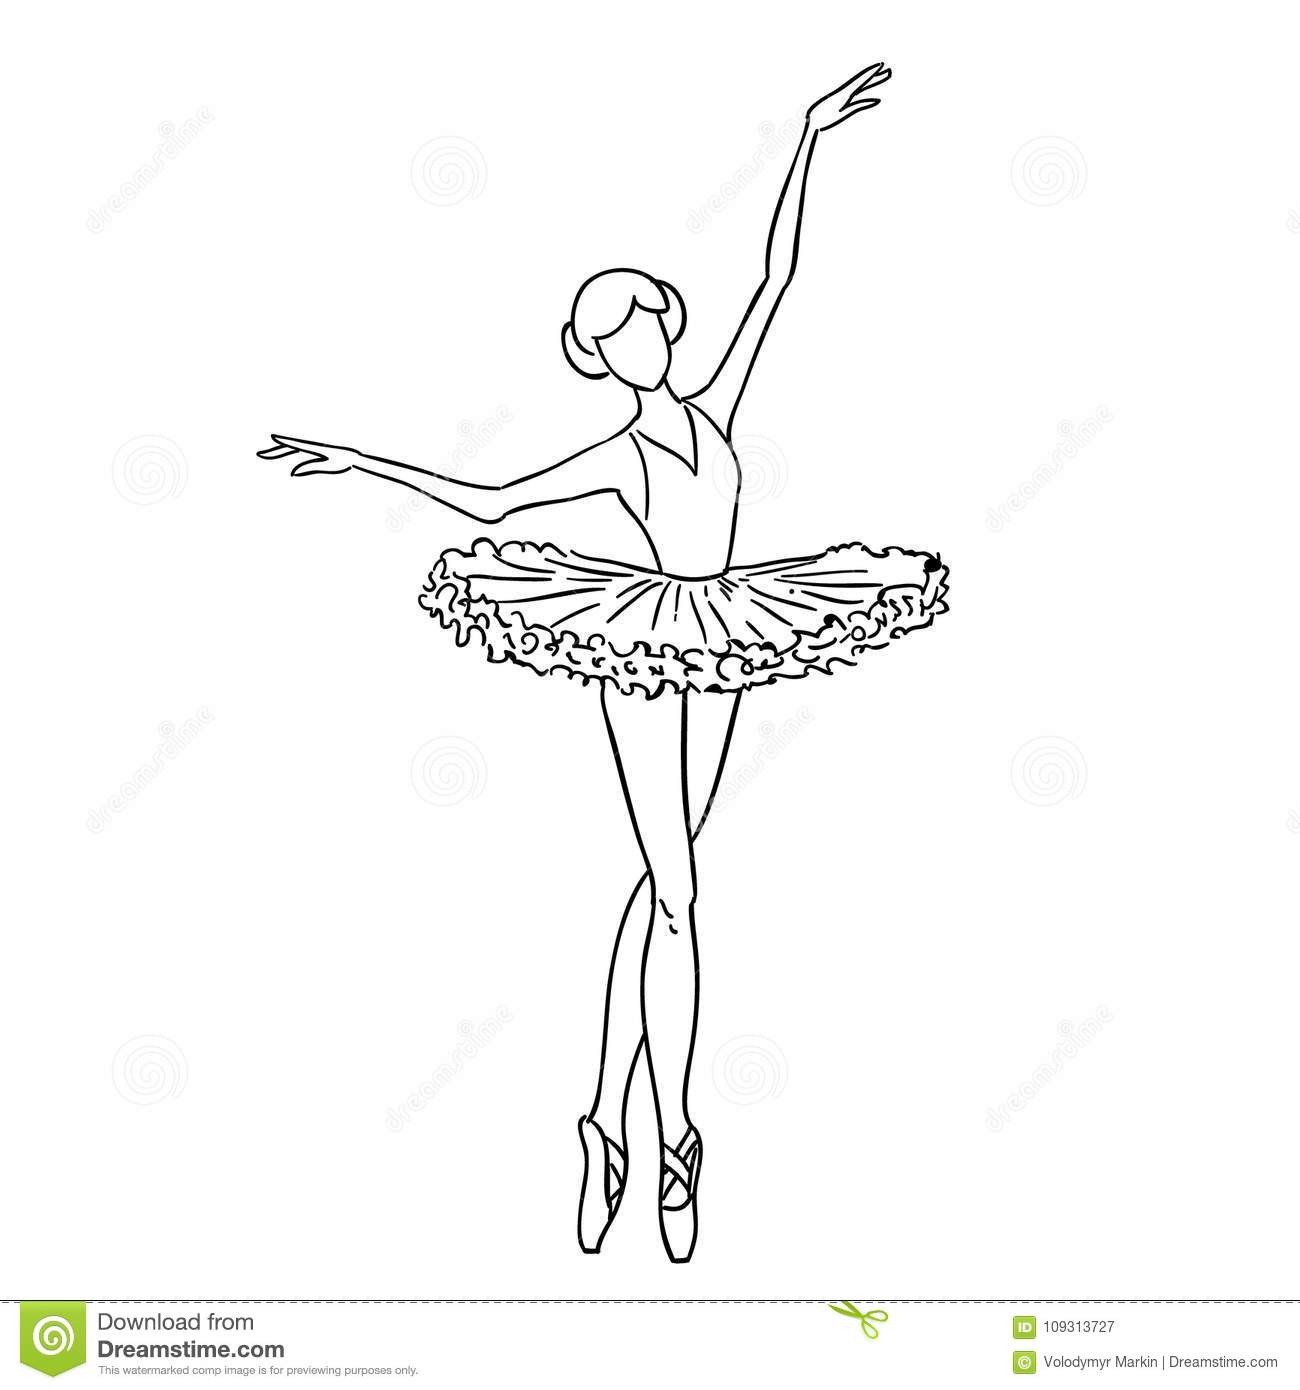 Illustration Of A Sketch Contour Drawing Of A Girl Ballerina Dancer Black And White Sketch Cartoon Doodle Stock Illustration Illustration Of Ballerina White 109313727